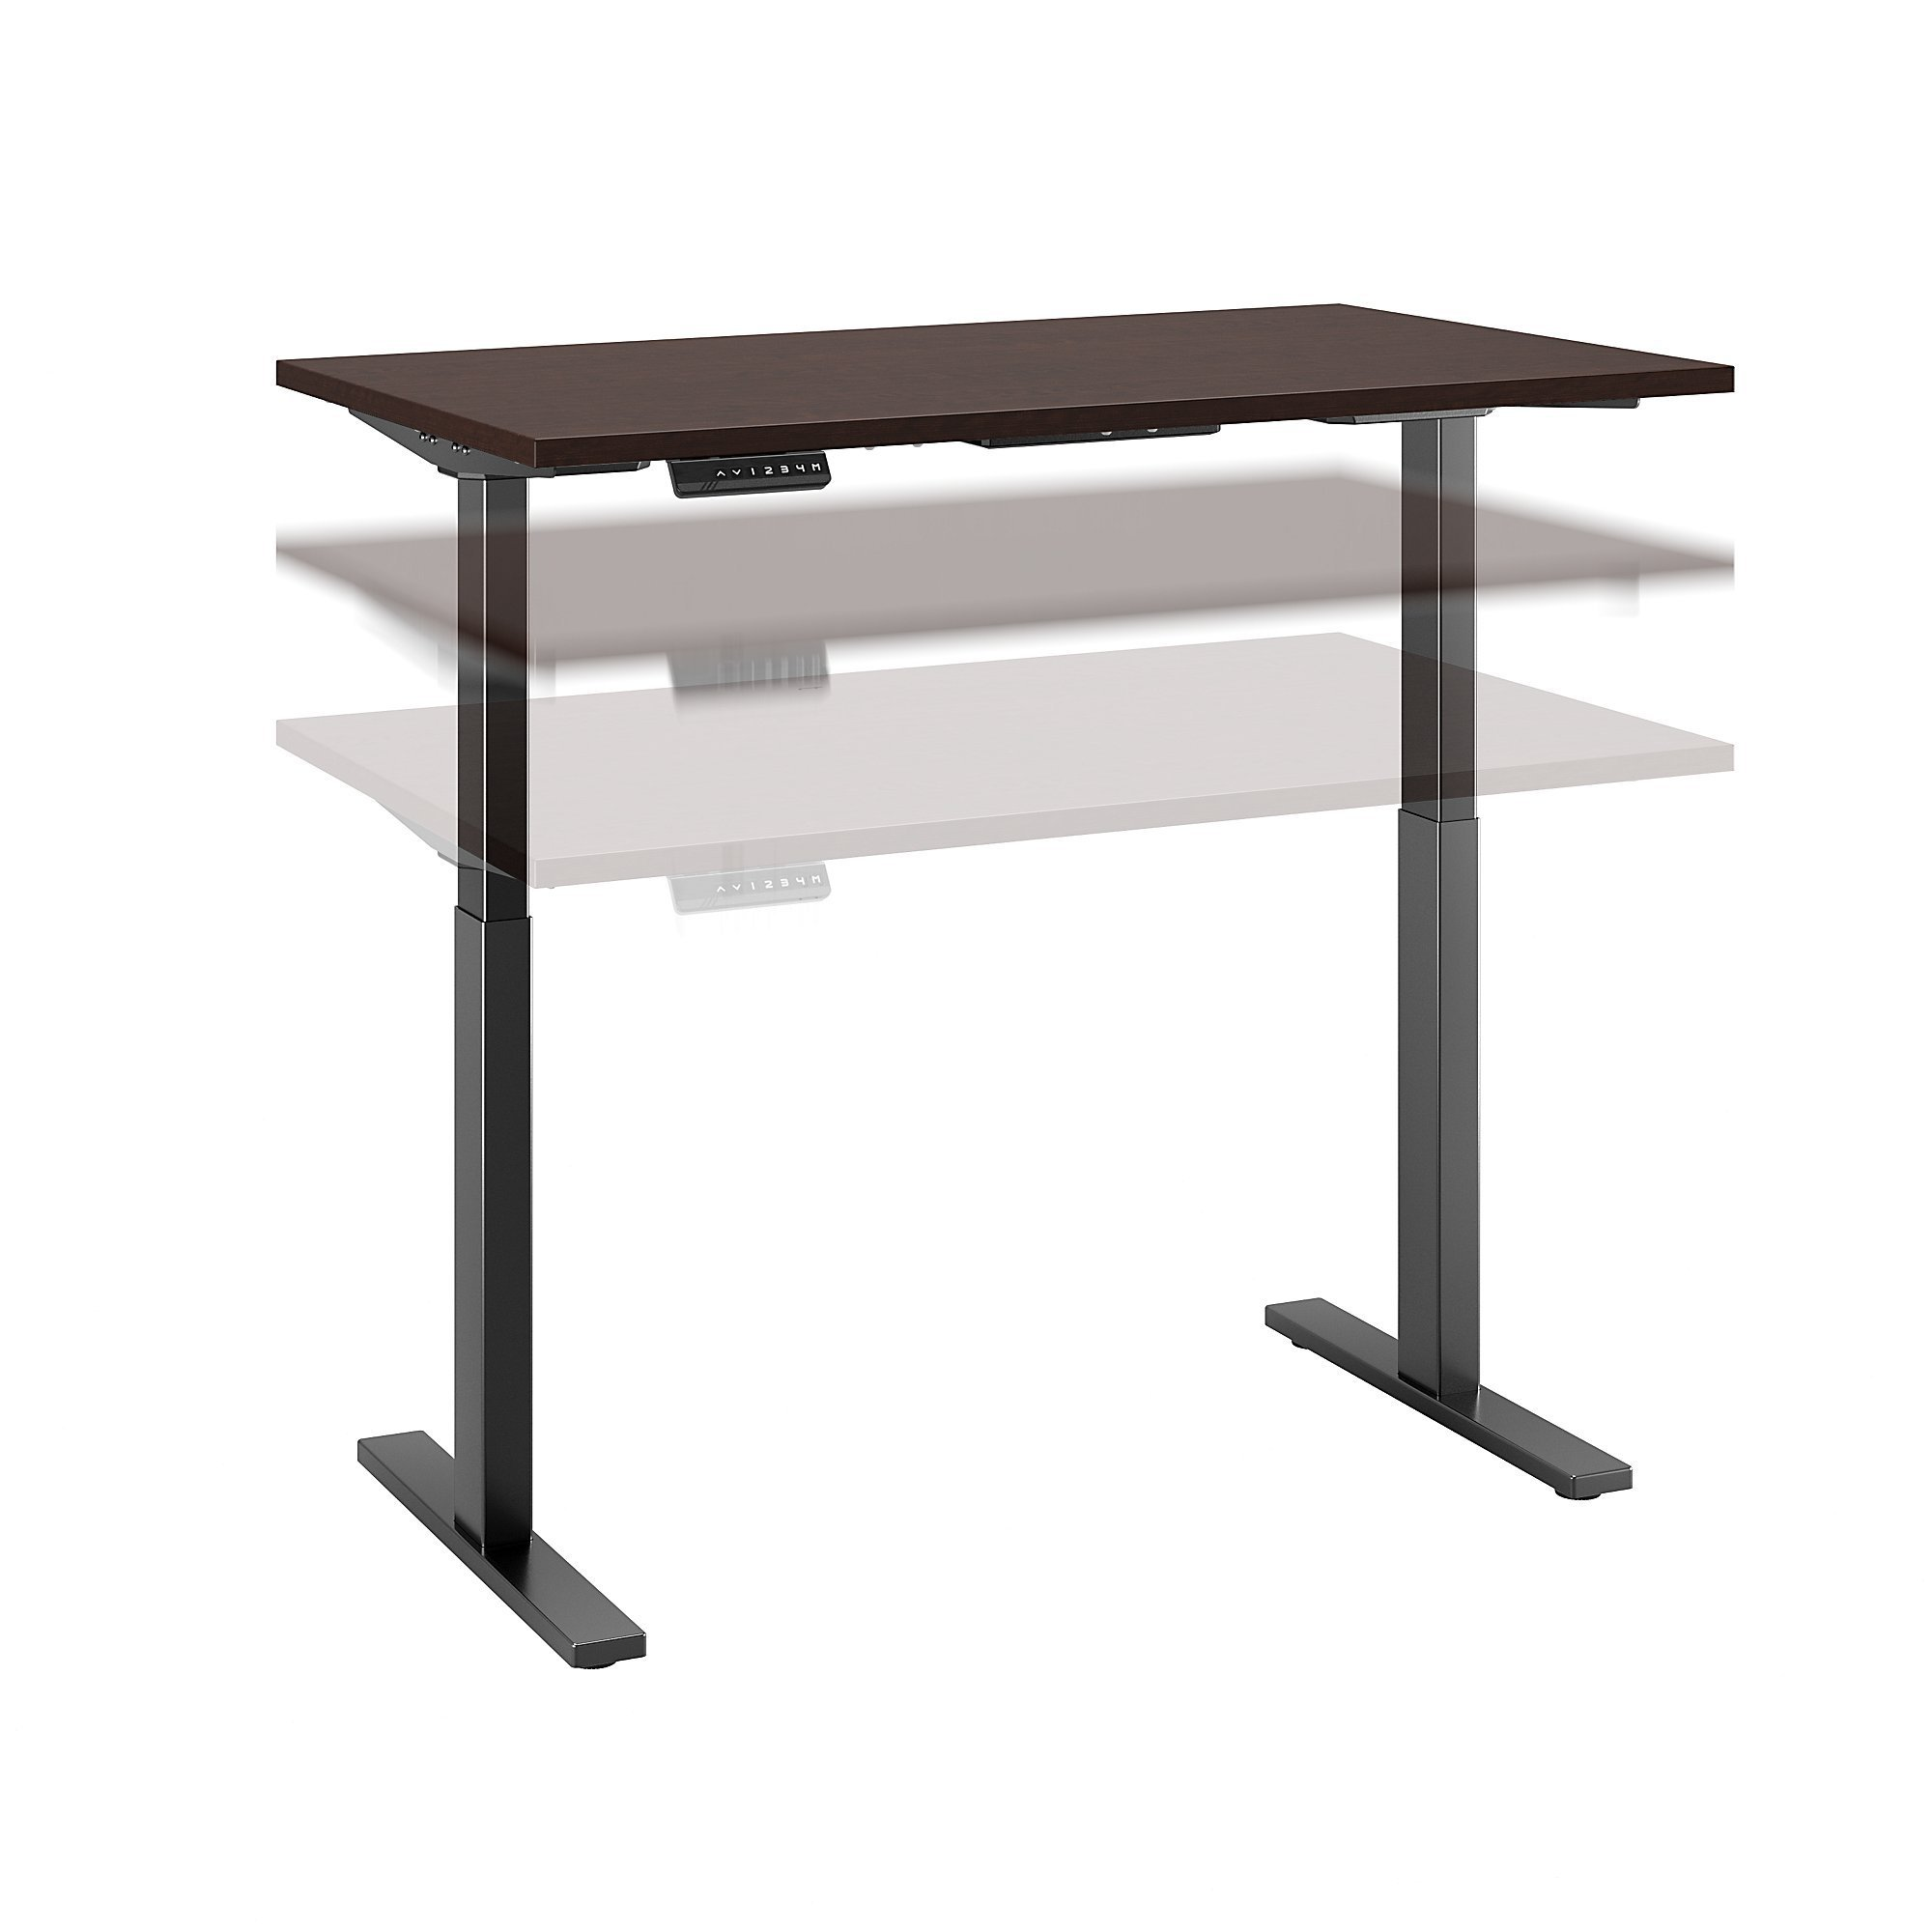 Move 60 Series 48W x 24D Height Adjustable Standing Desk in Mocha Cherry Satin with Black Base